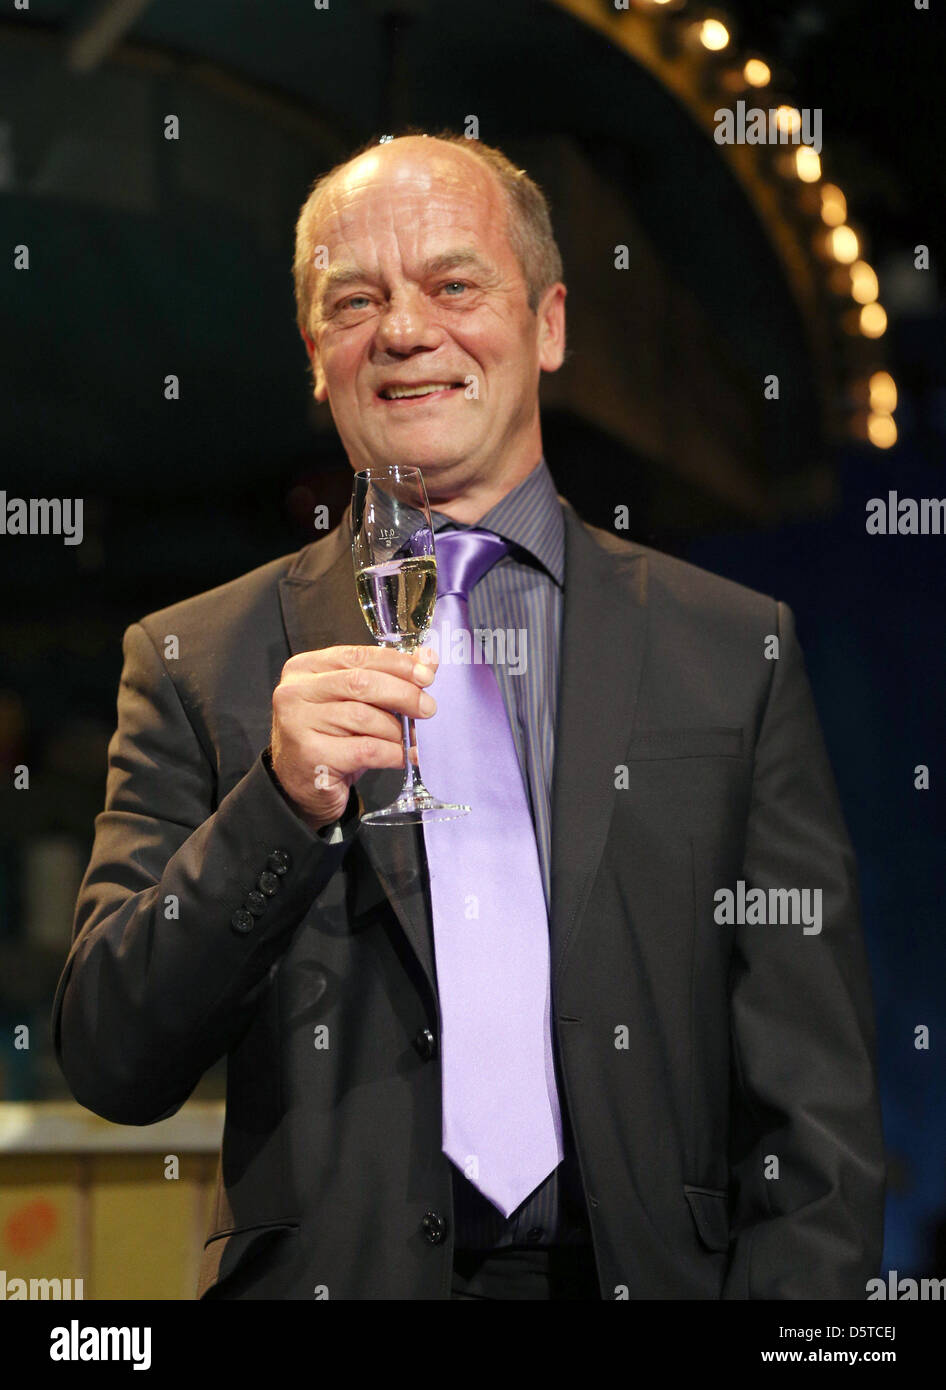 Entertainer and theatre owner Corny Littmann hold a glass of champagne on the stage at Schmidt's Tivoli Theatre - Stock Image